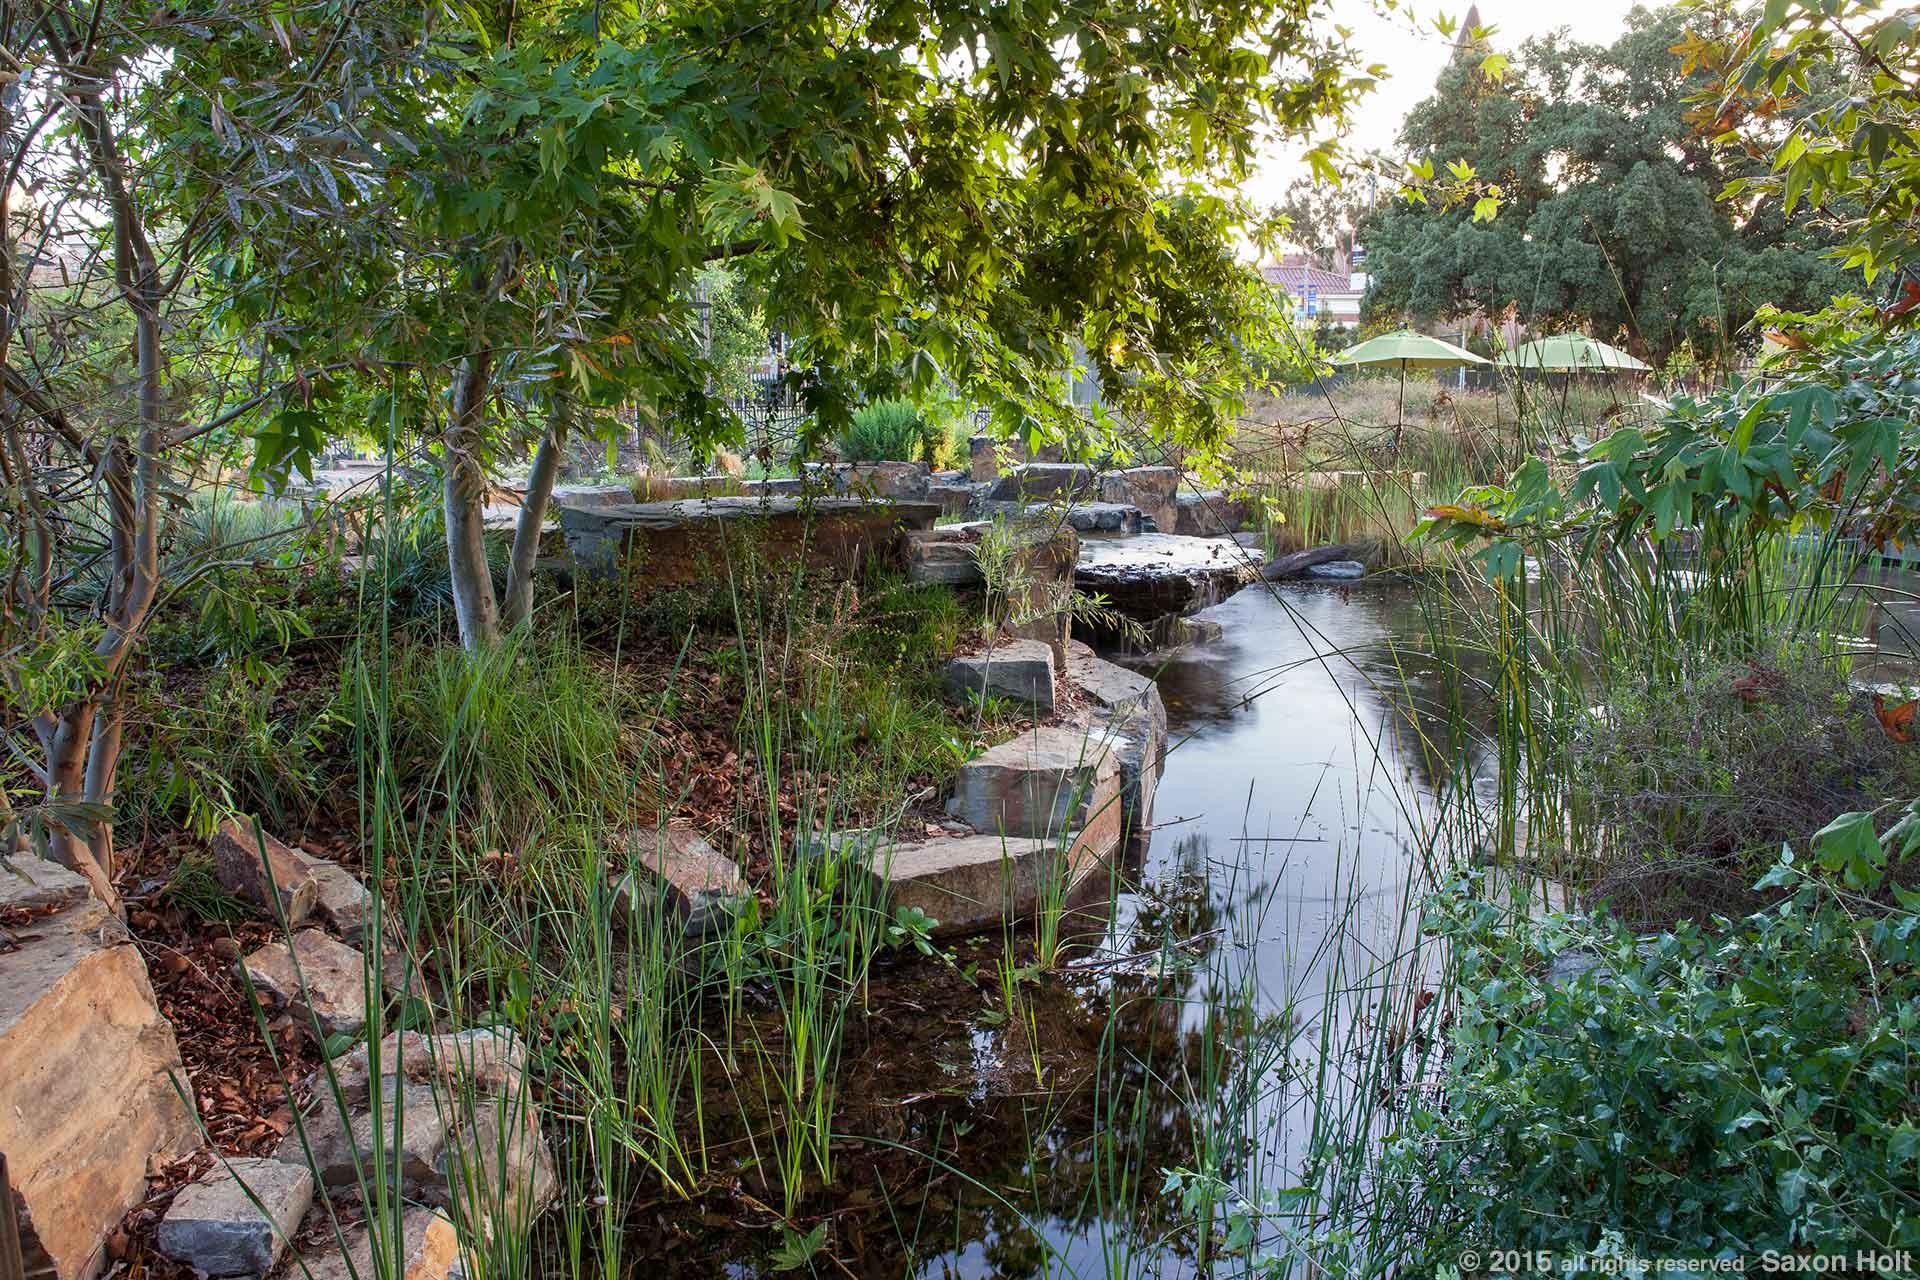 Pond, the Natural History Museum of Los Angeles, outdoor habitat garden